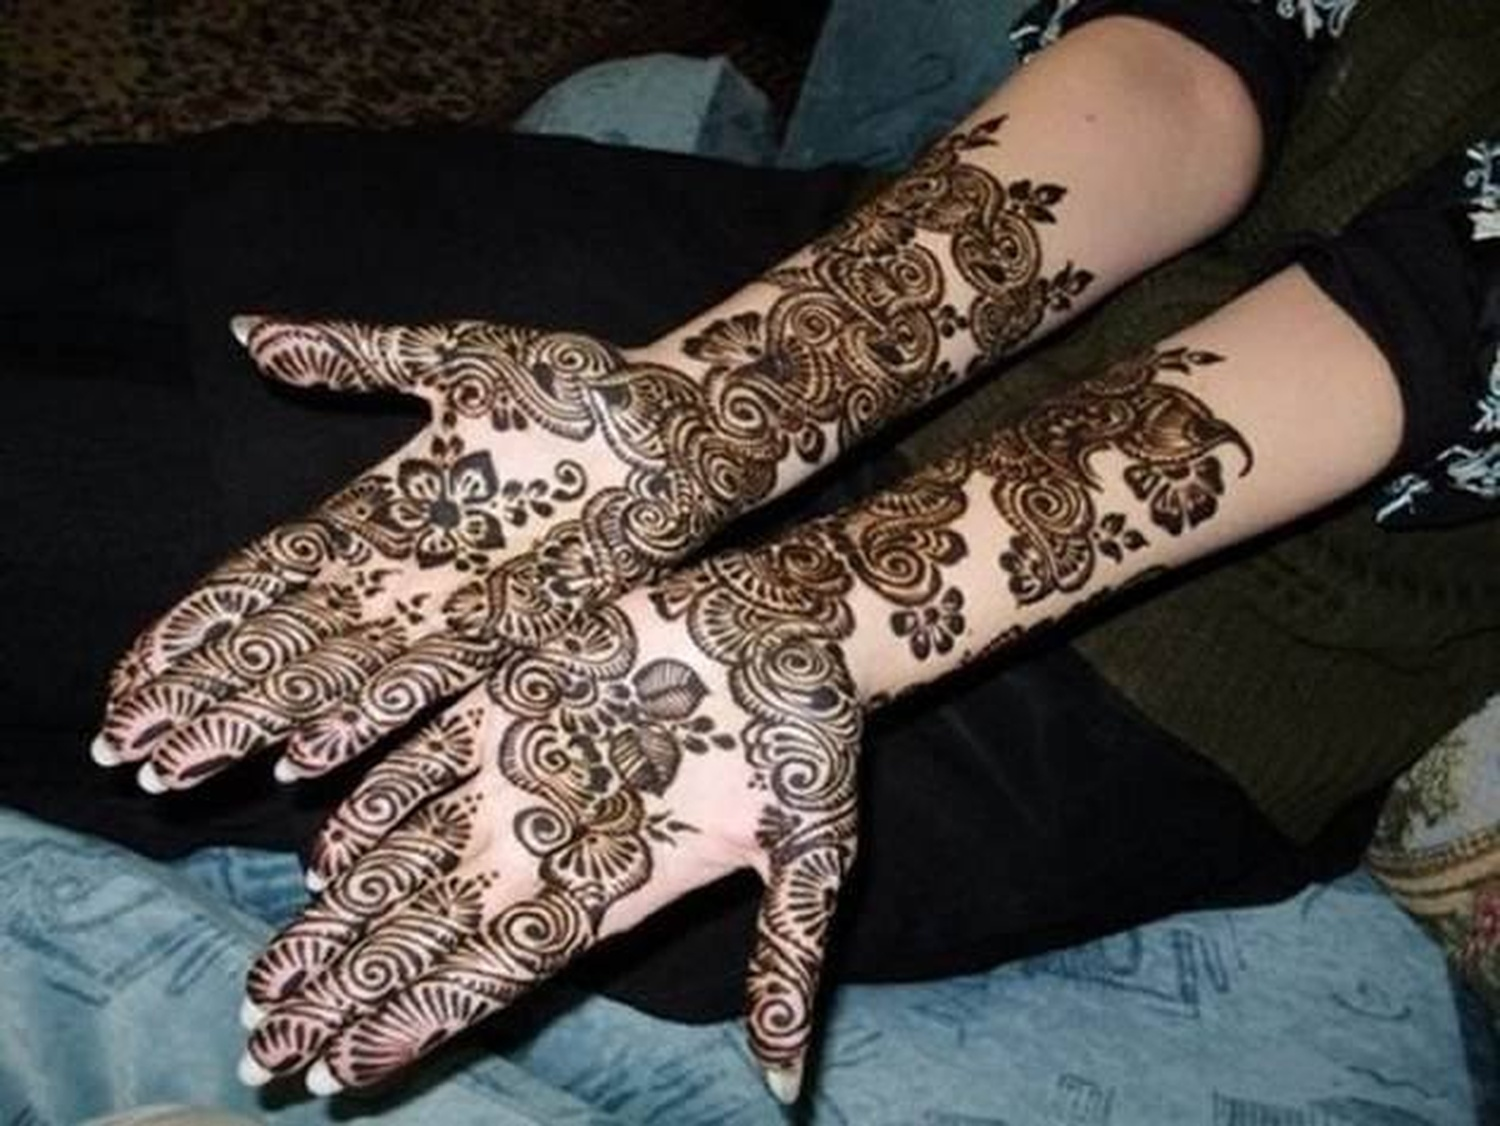 Bridal Mehndi Artist In Bangalore : Poonam mehndi tattoos bridal artist in bangalore weddingz